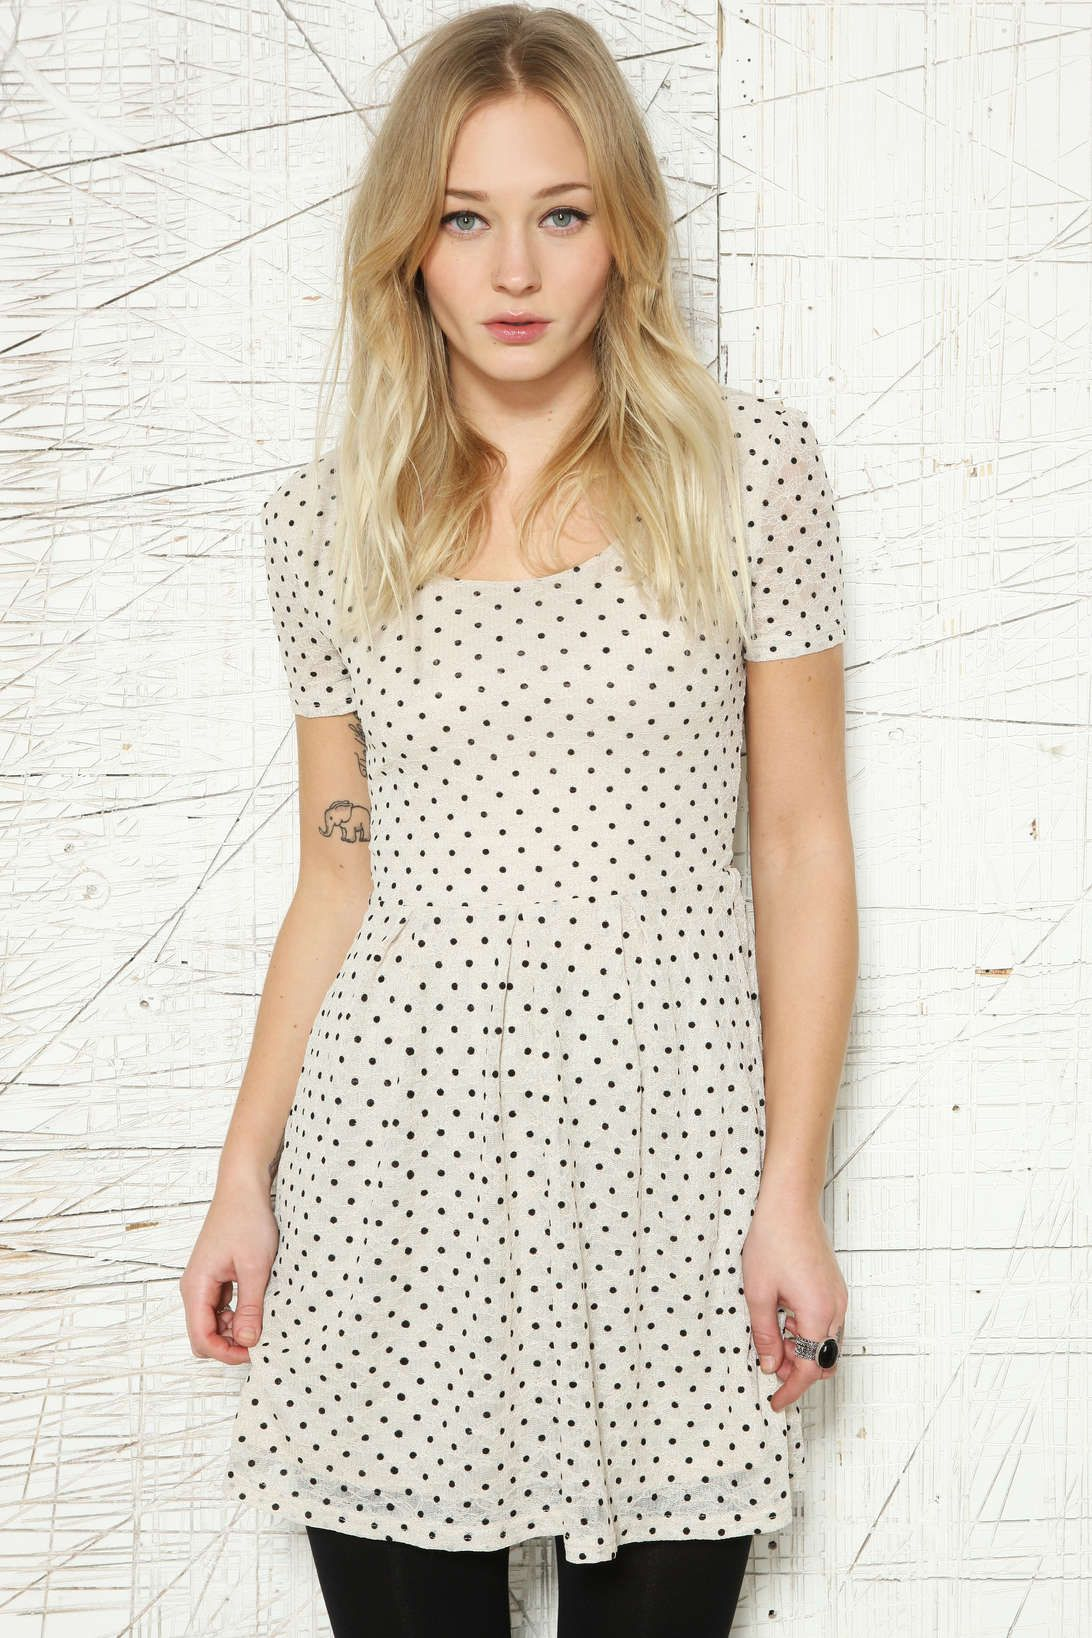 Pins And Needles Clothing Monochrome Polka Dot Dress Pins & Needles  Monochrome  Pinterest